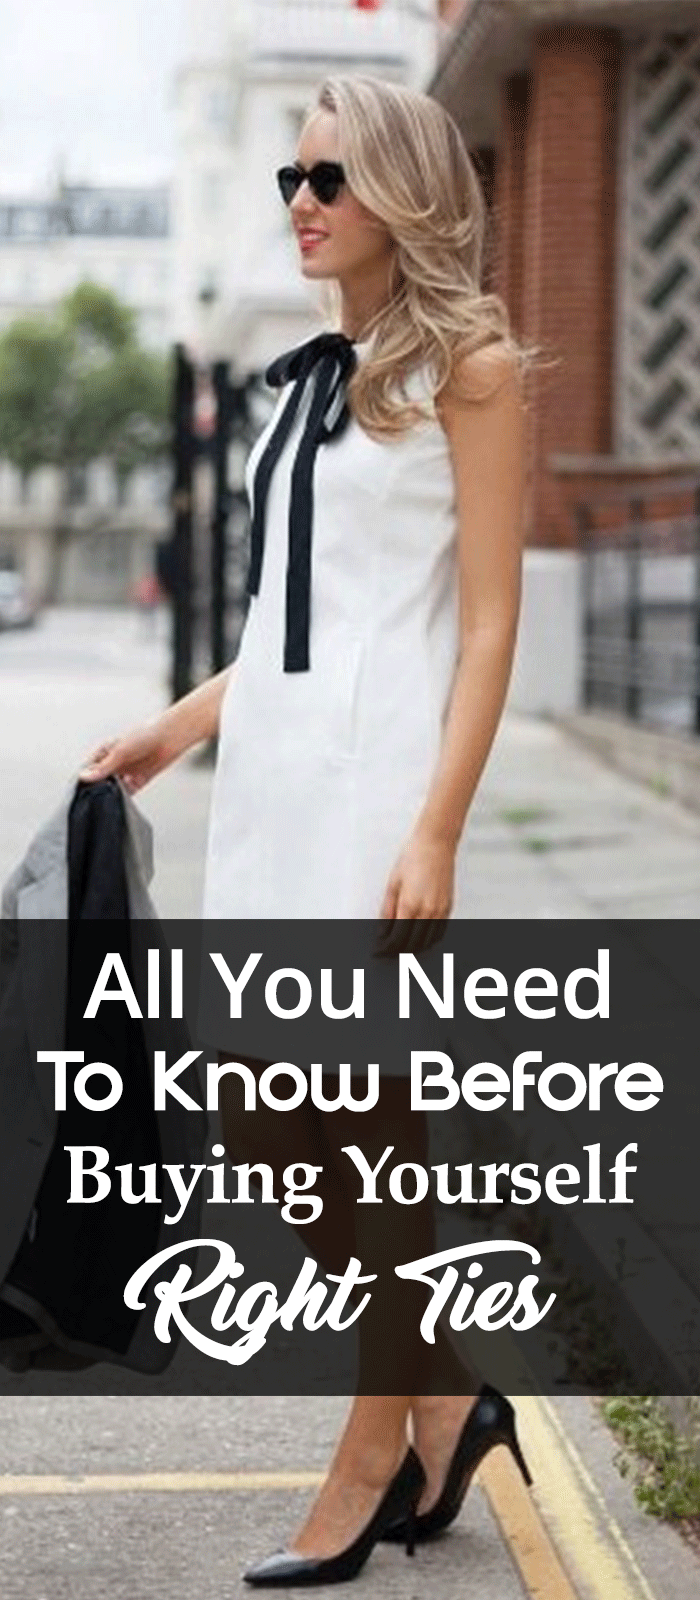 All You Need To Know Before Buying Yourself Right Ties